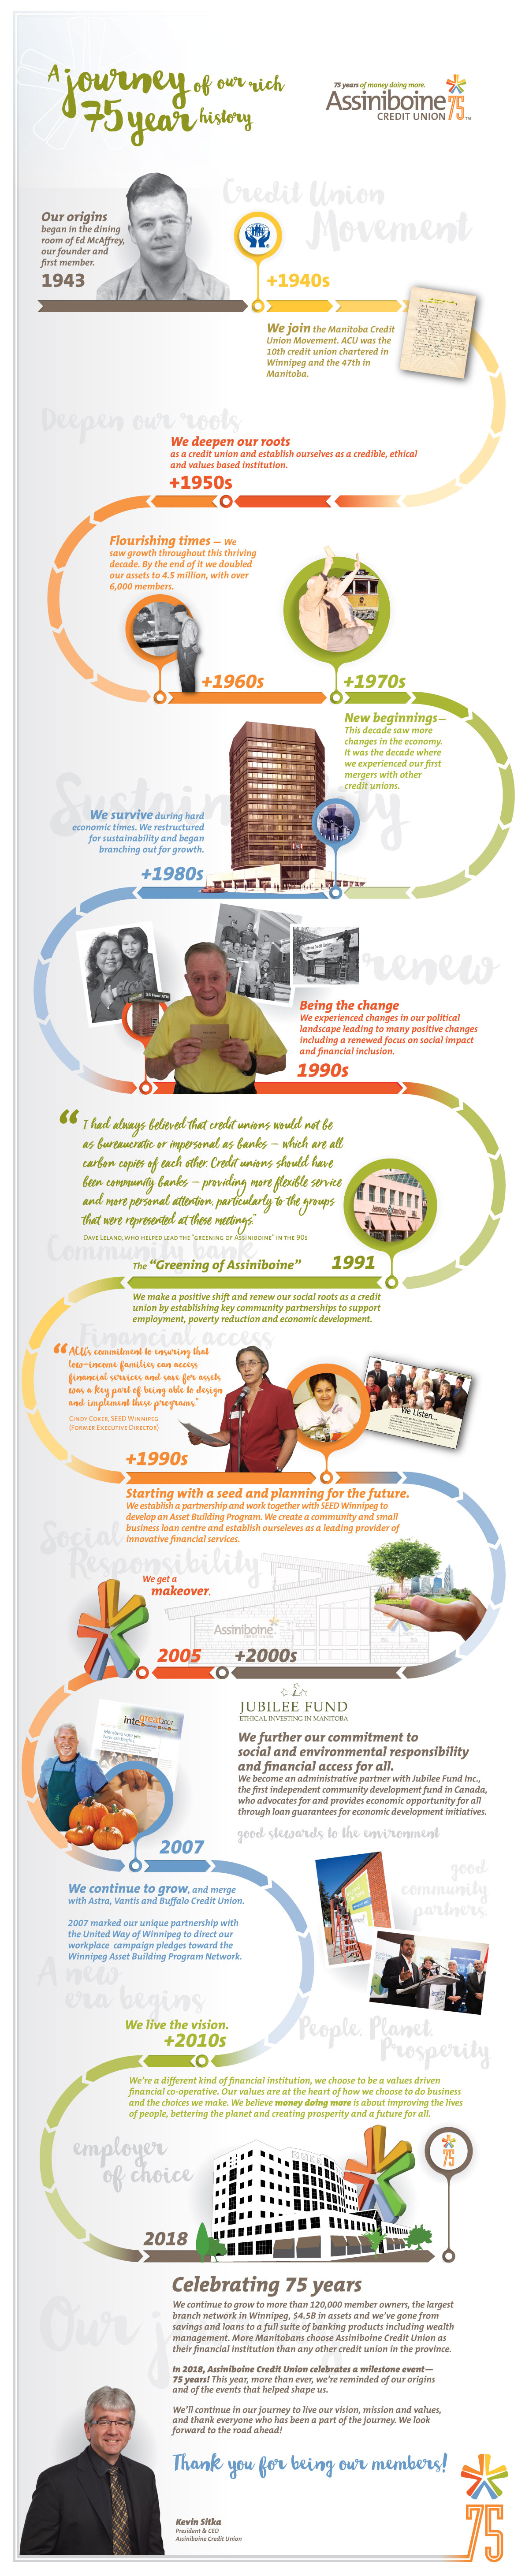 75 years infographic ACU history